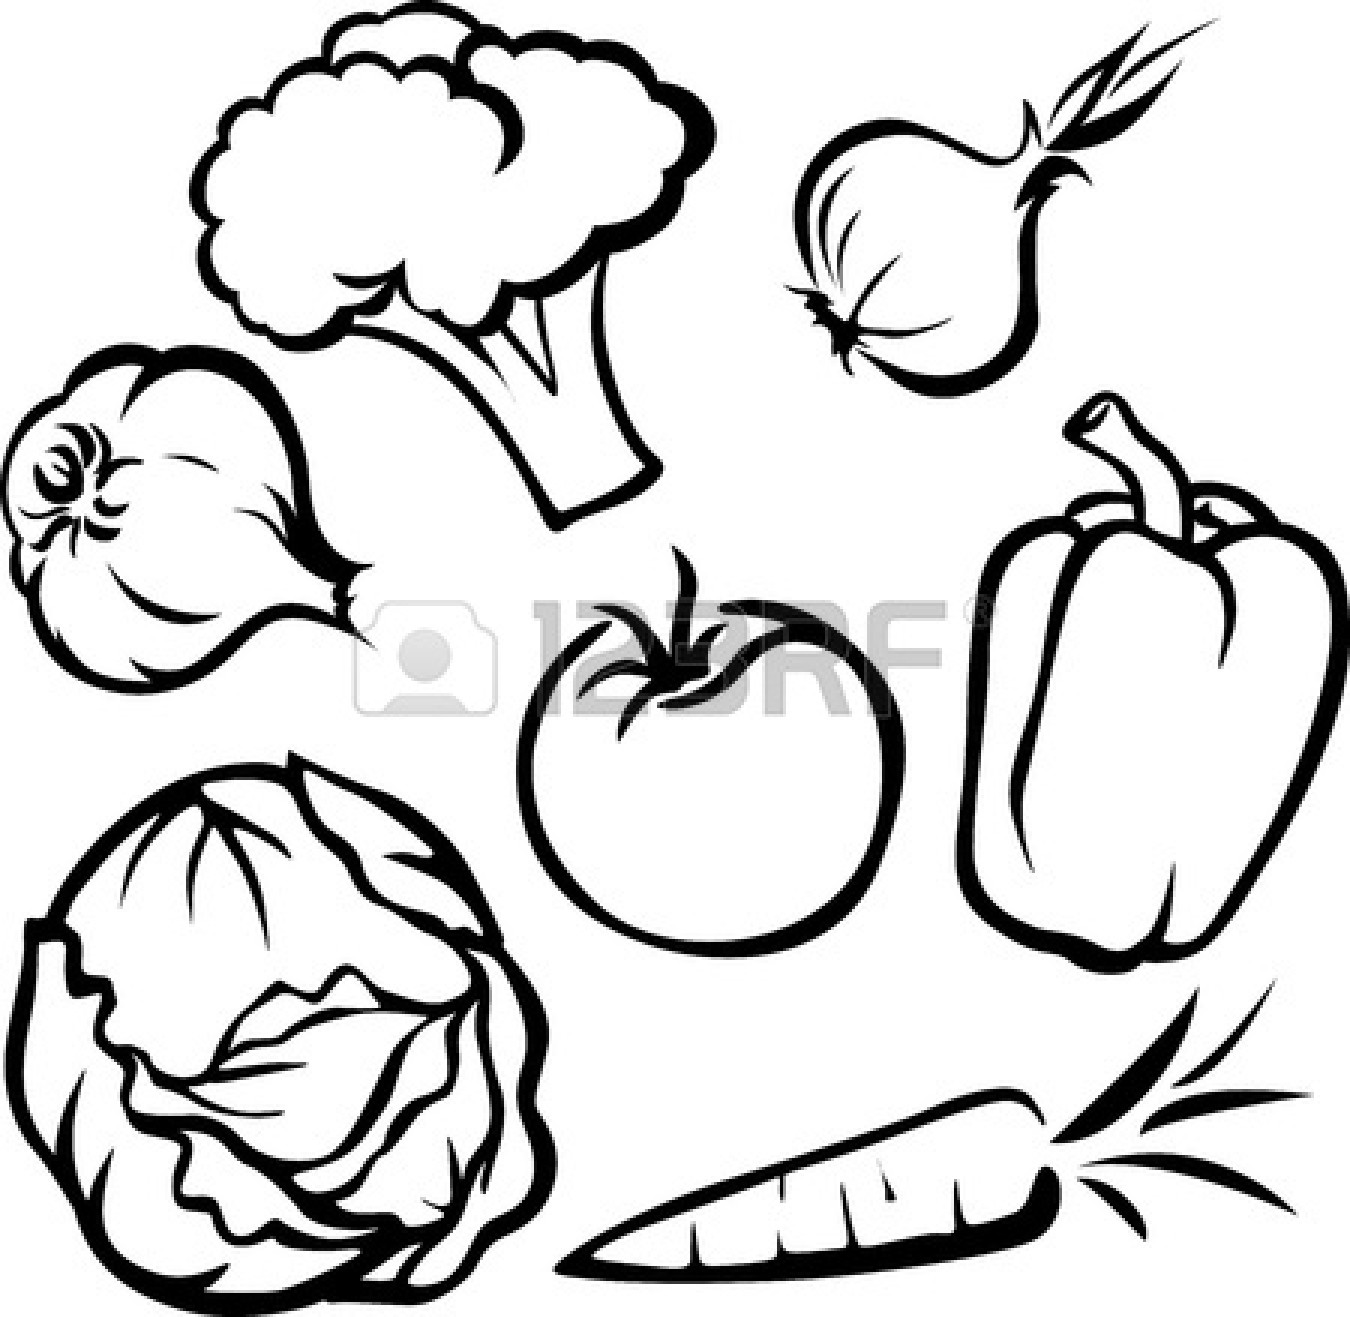 1350x1317 Fruit And Vegetable Clipart Black And White Fruits And Vegetables